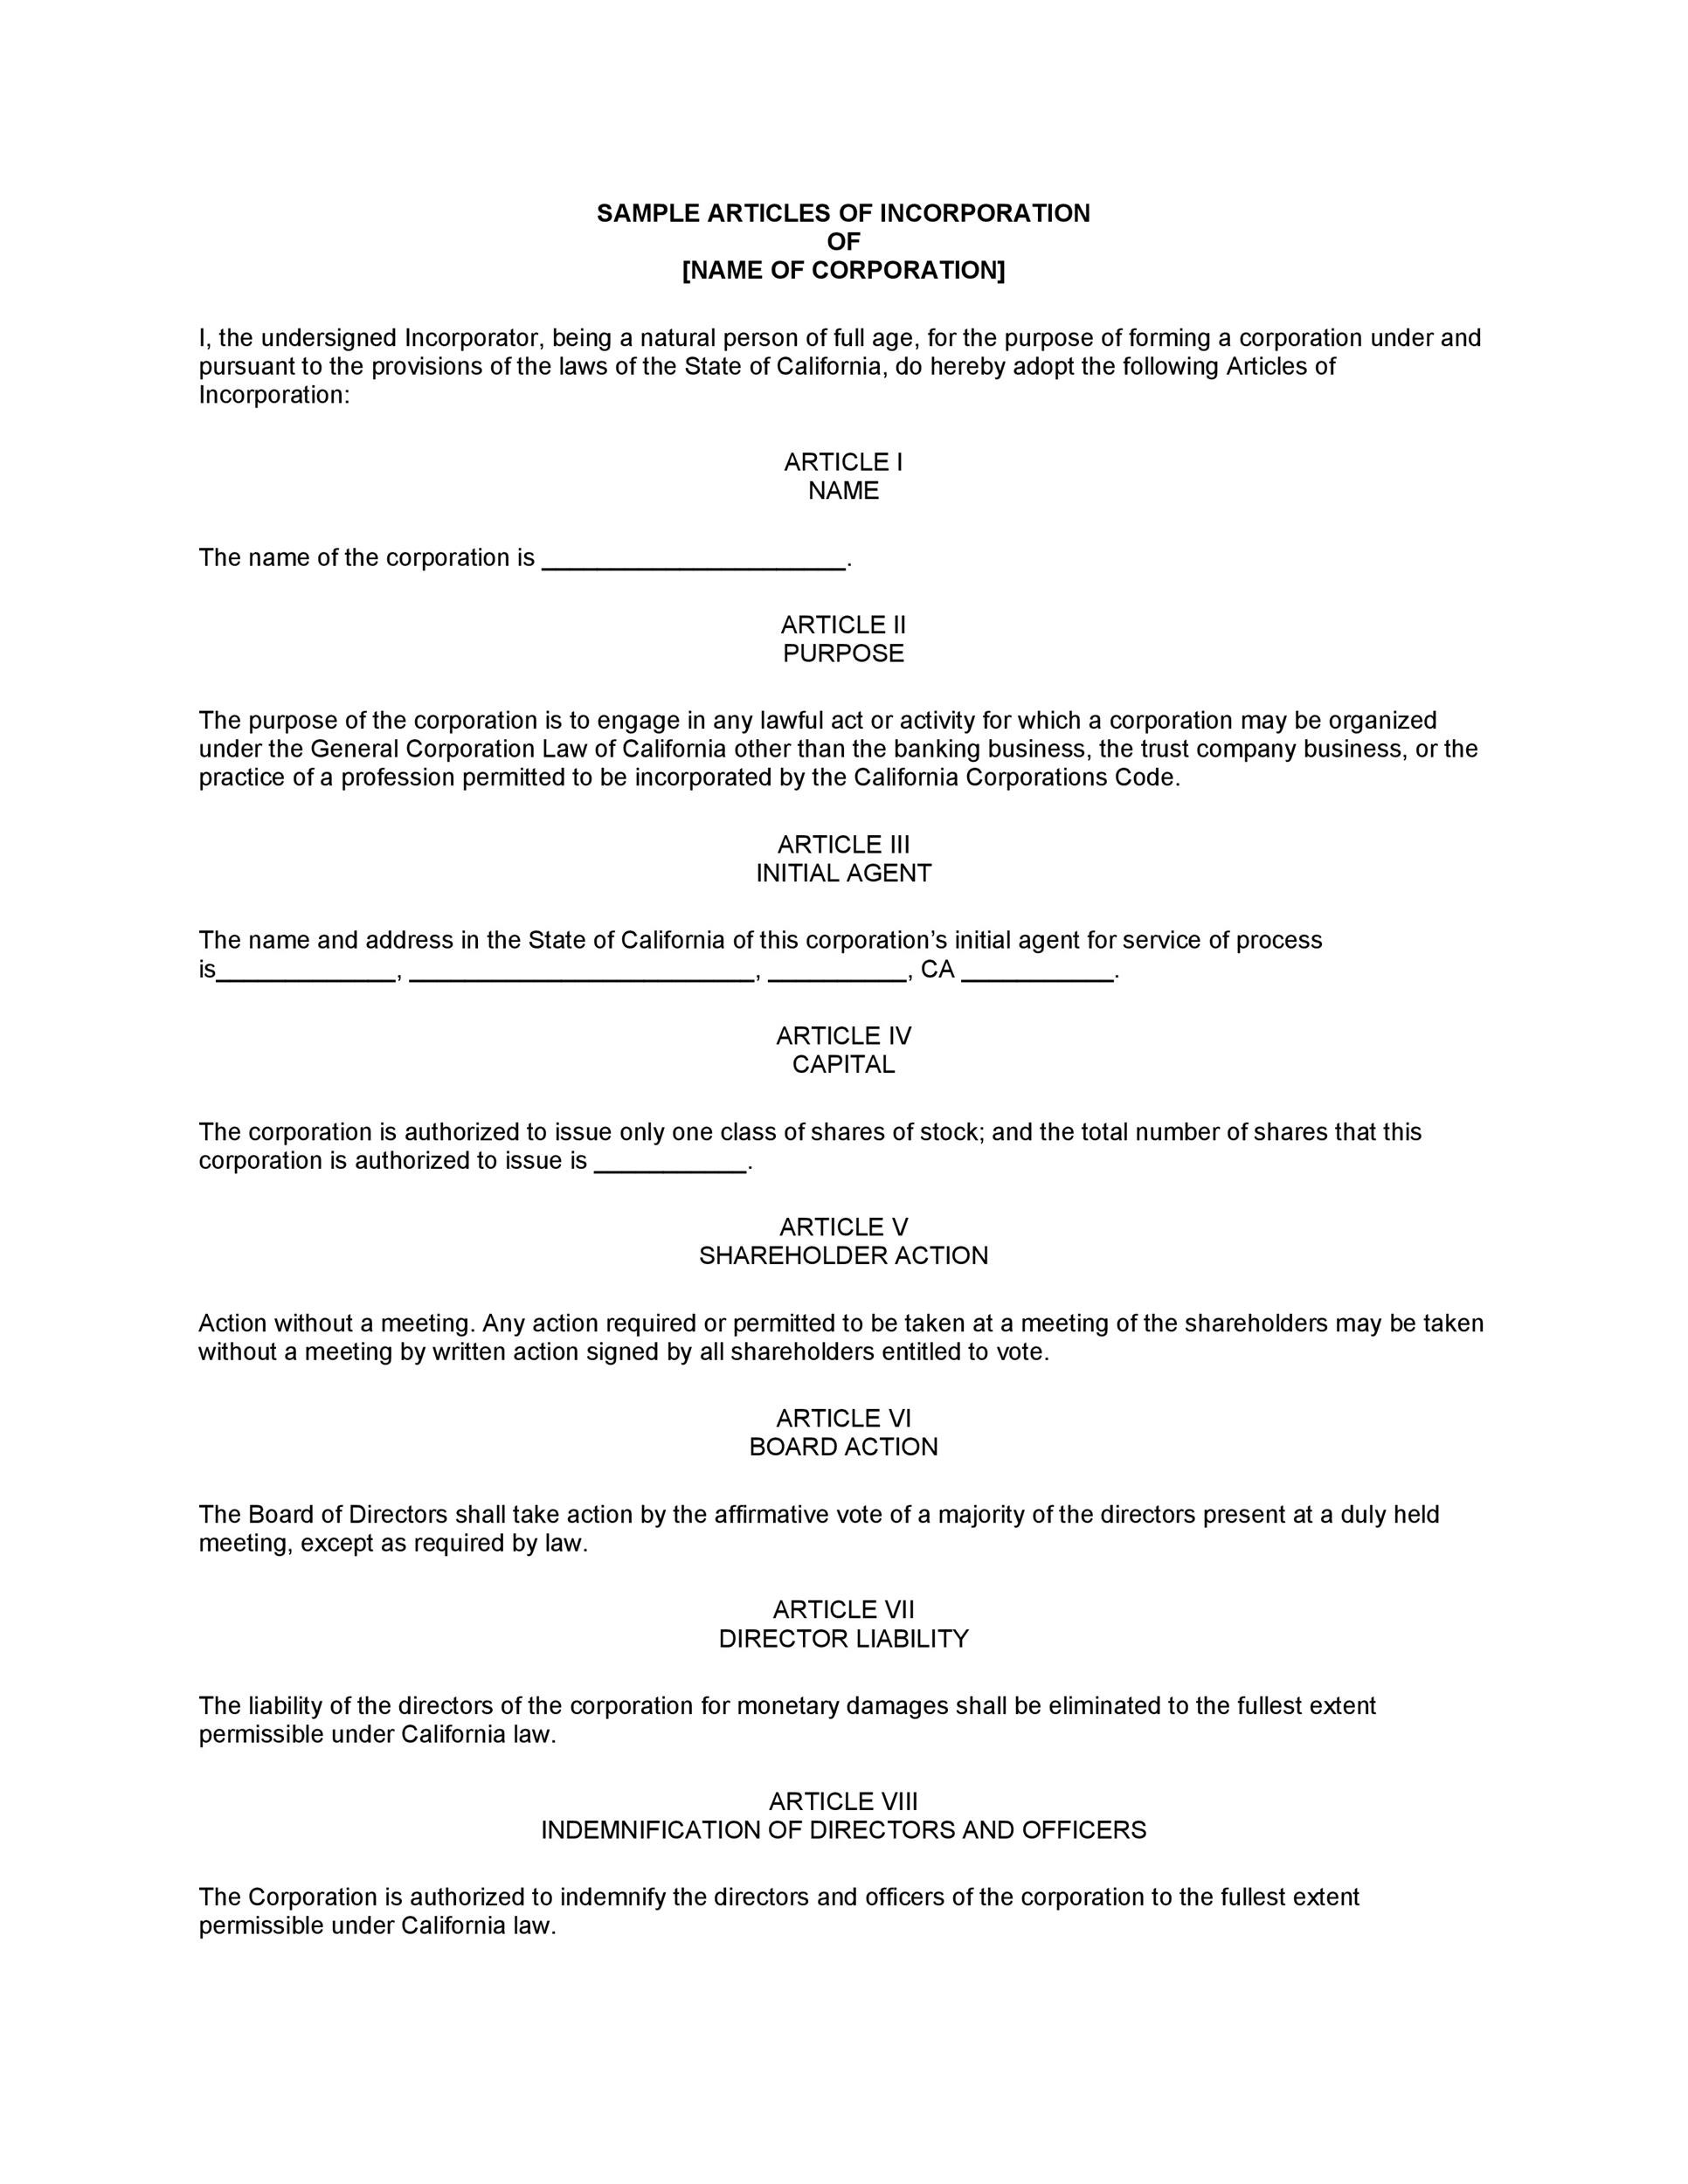 Free articles of incorporation template 01